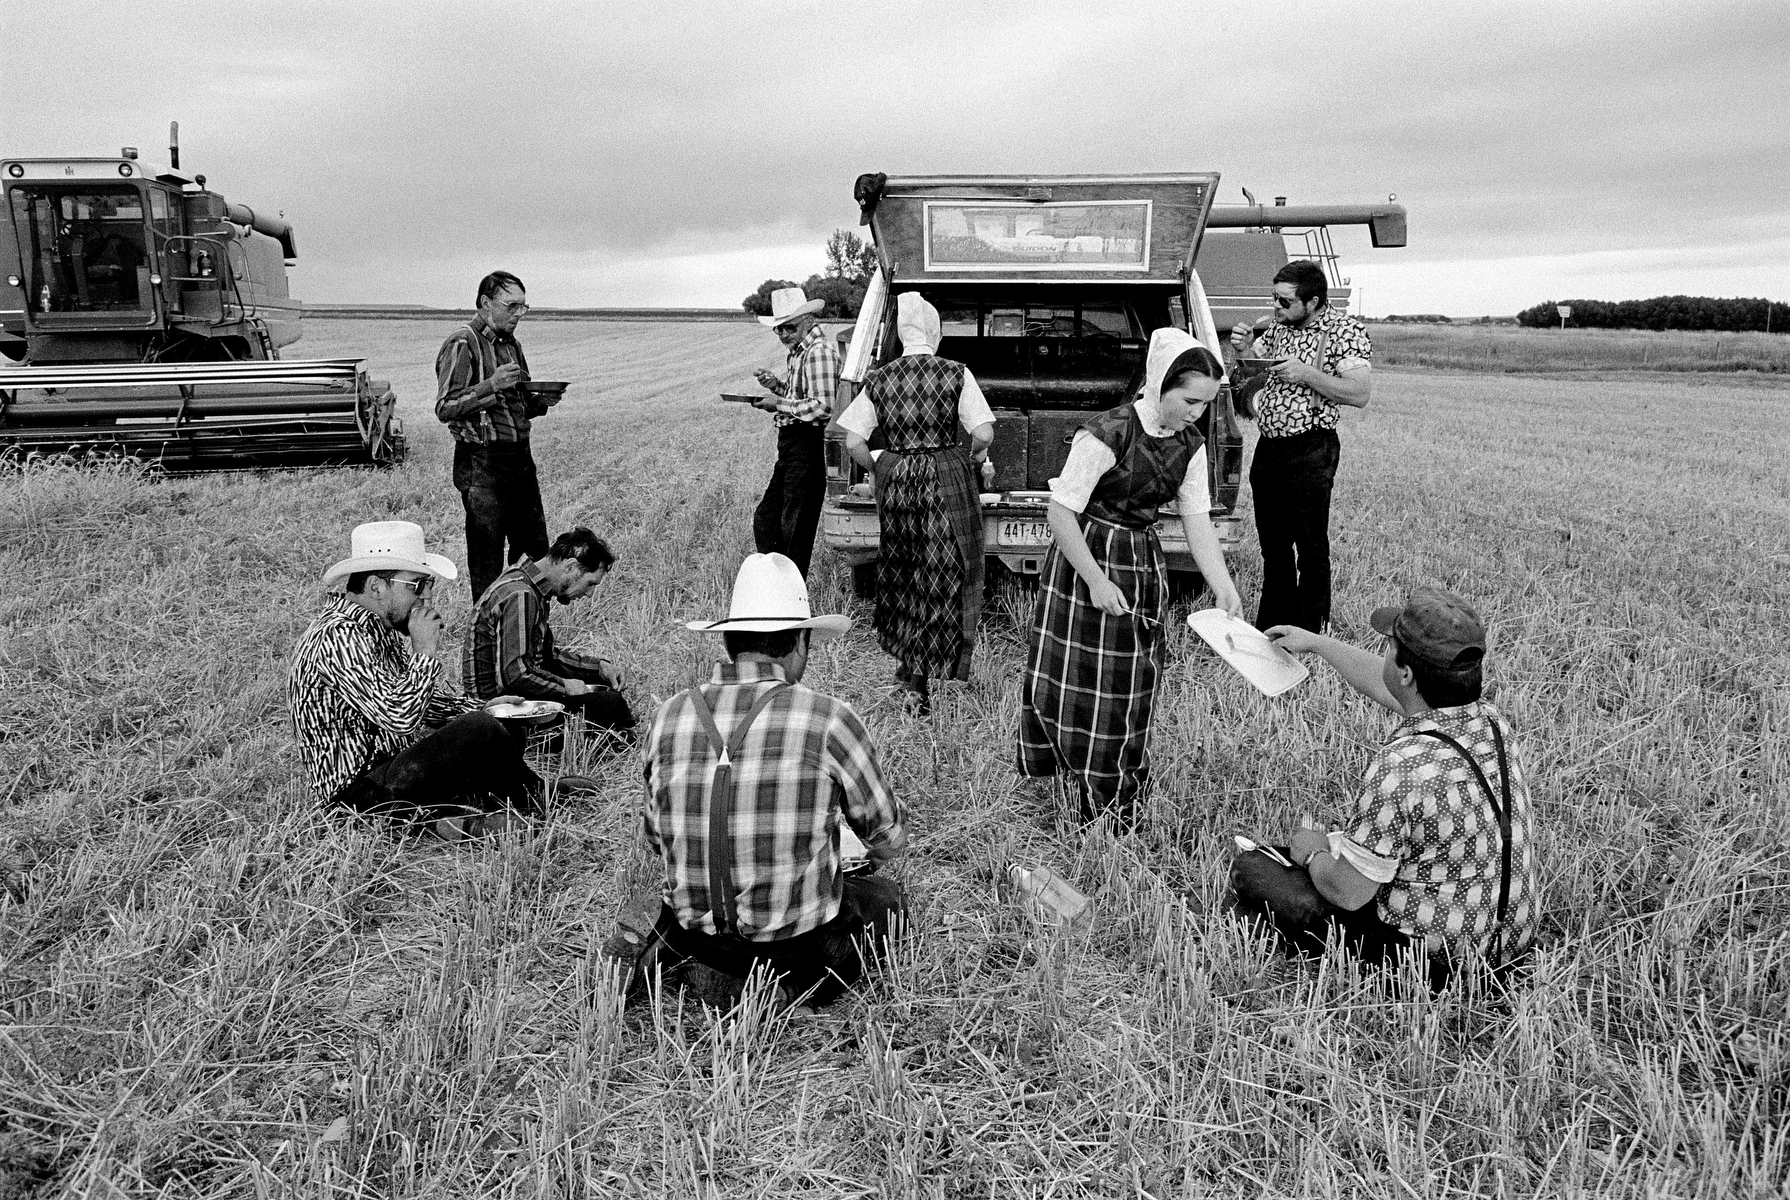 Hutterites living in Montana and Alberta, Canada are a communal branch of Anabaptists who, like the Amish and Mennonites, trace their roots to the Radical Reformation of the 16th century.